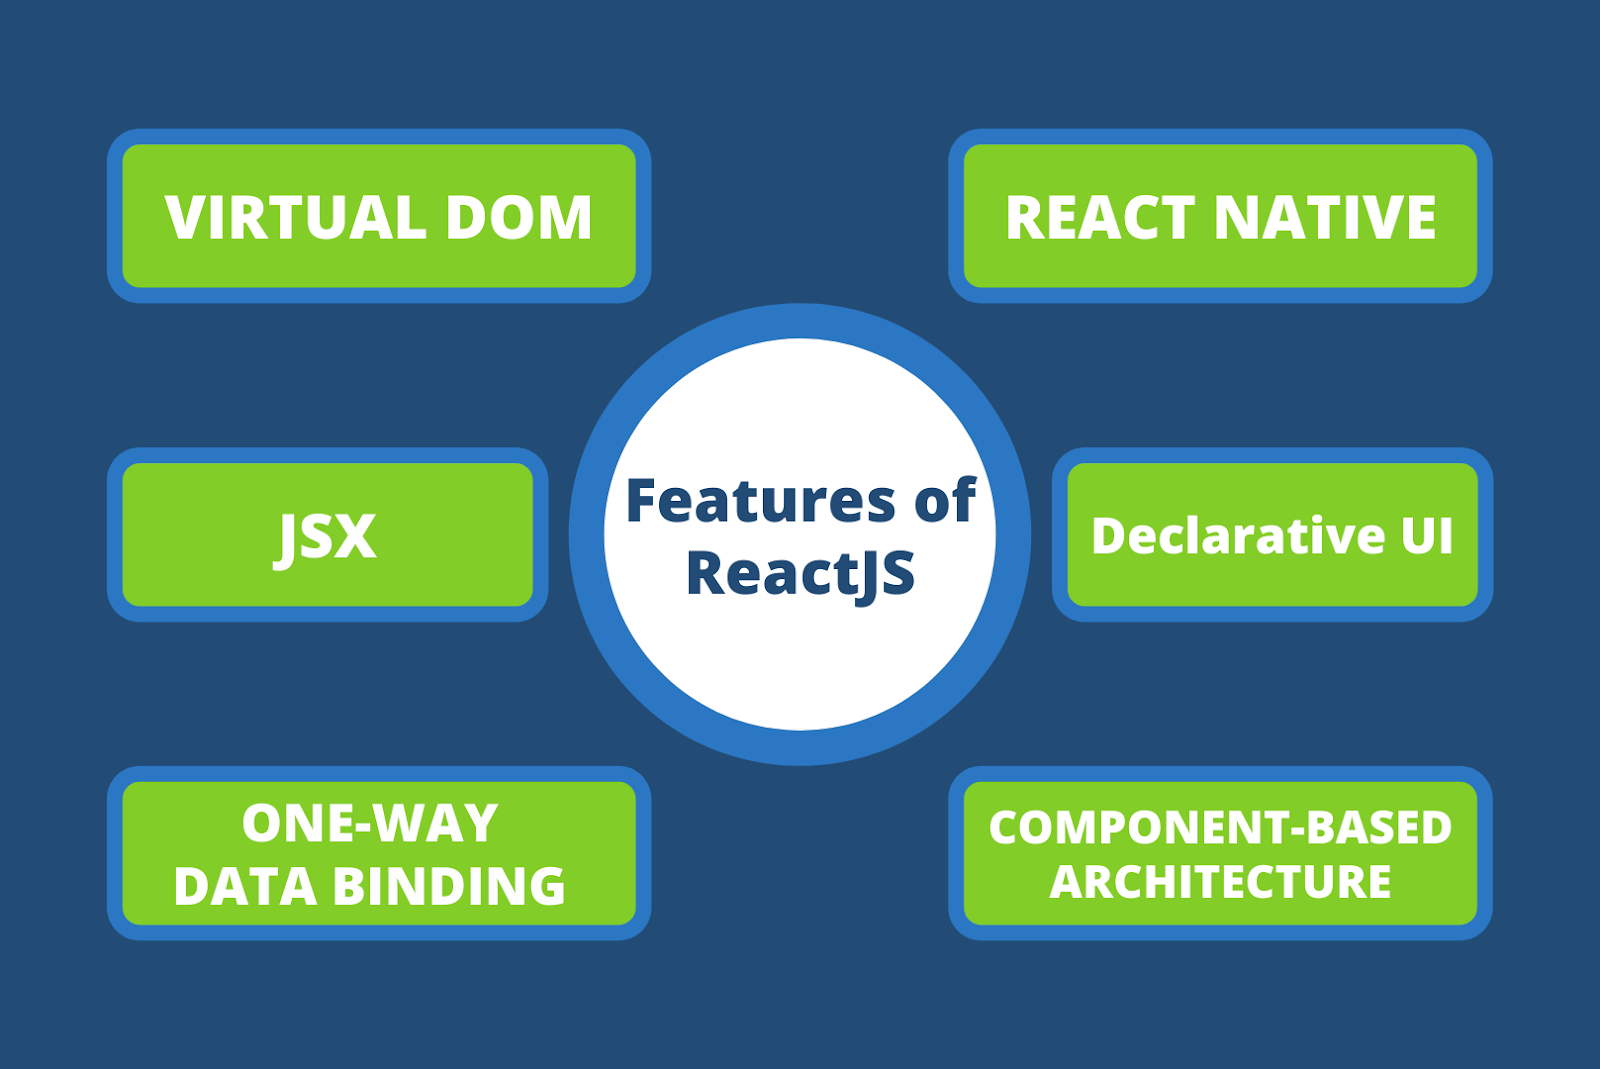 Features of ReactJS